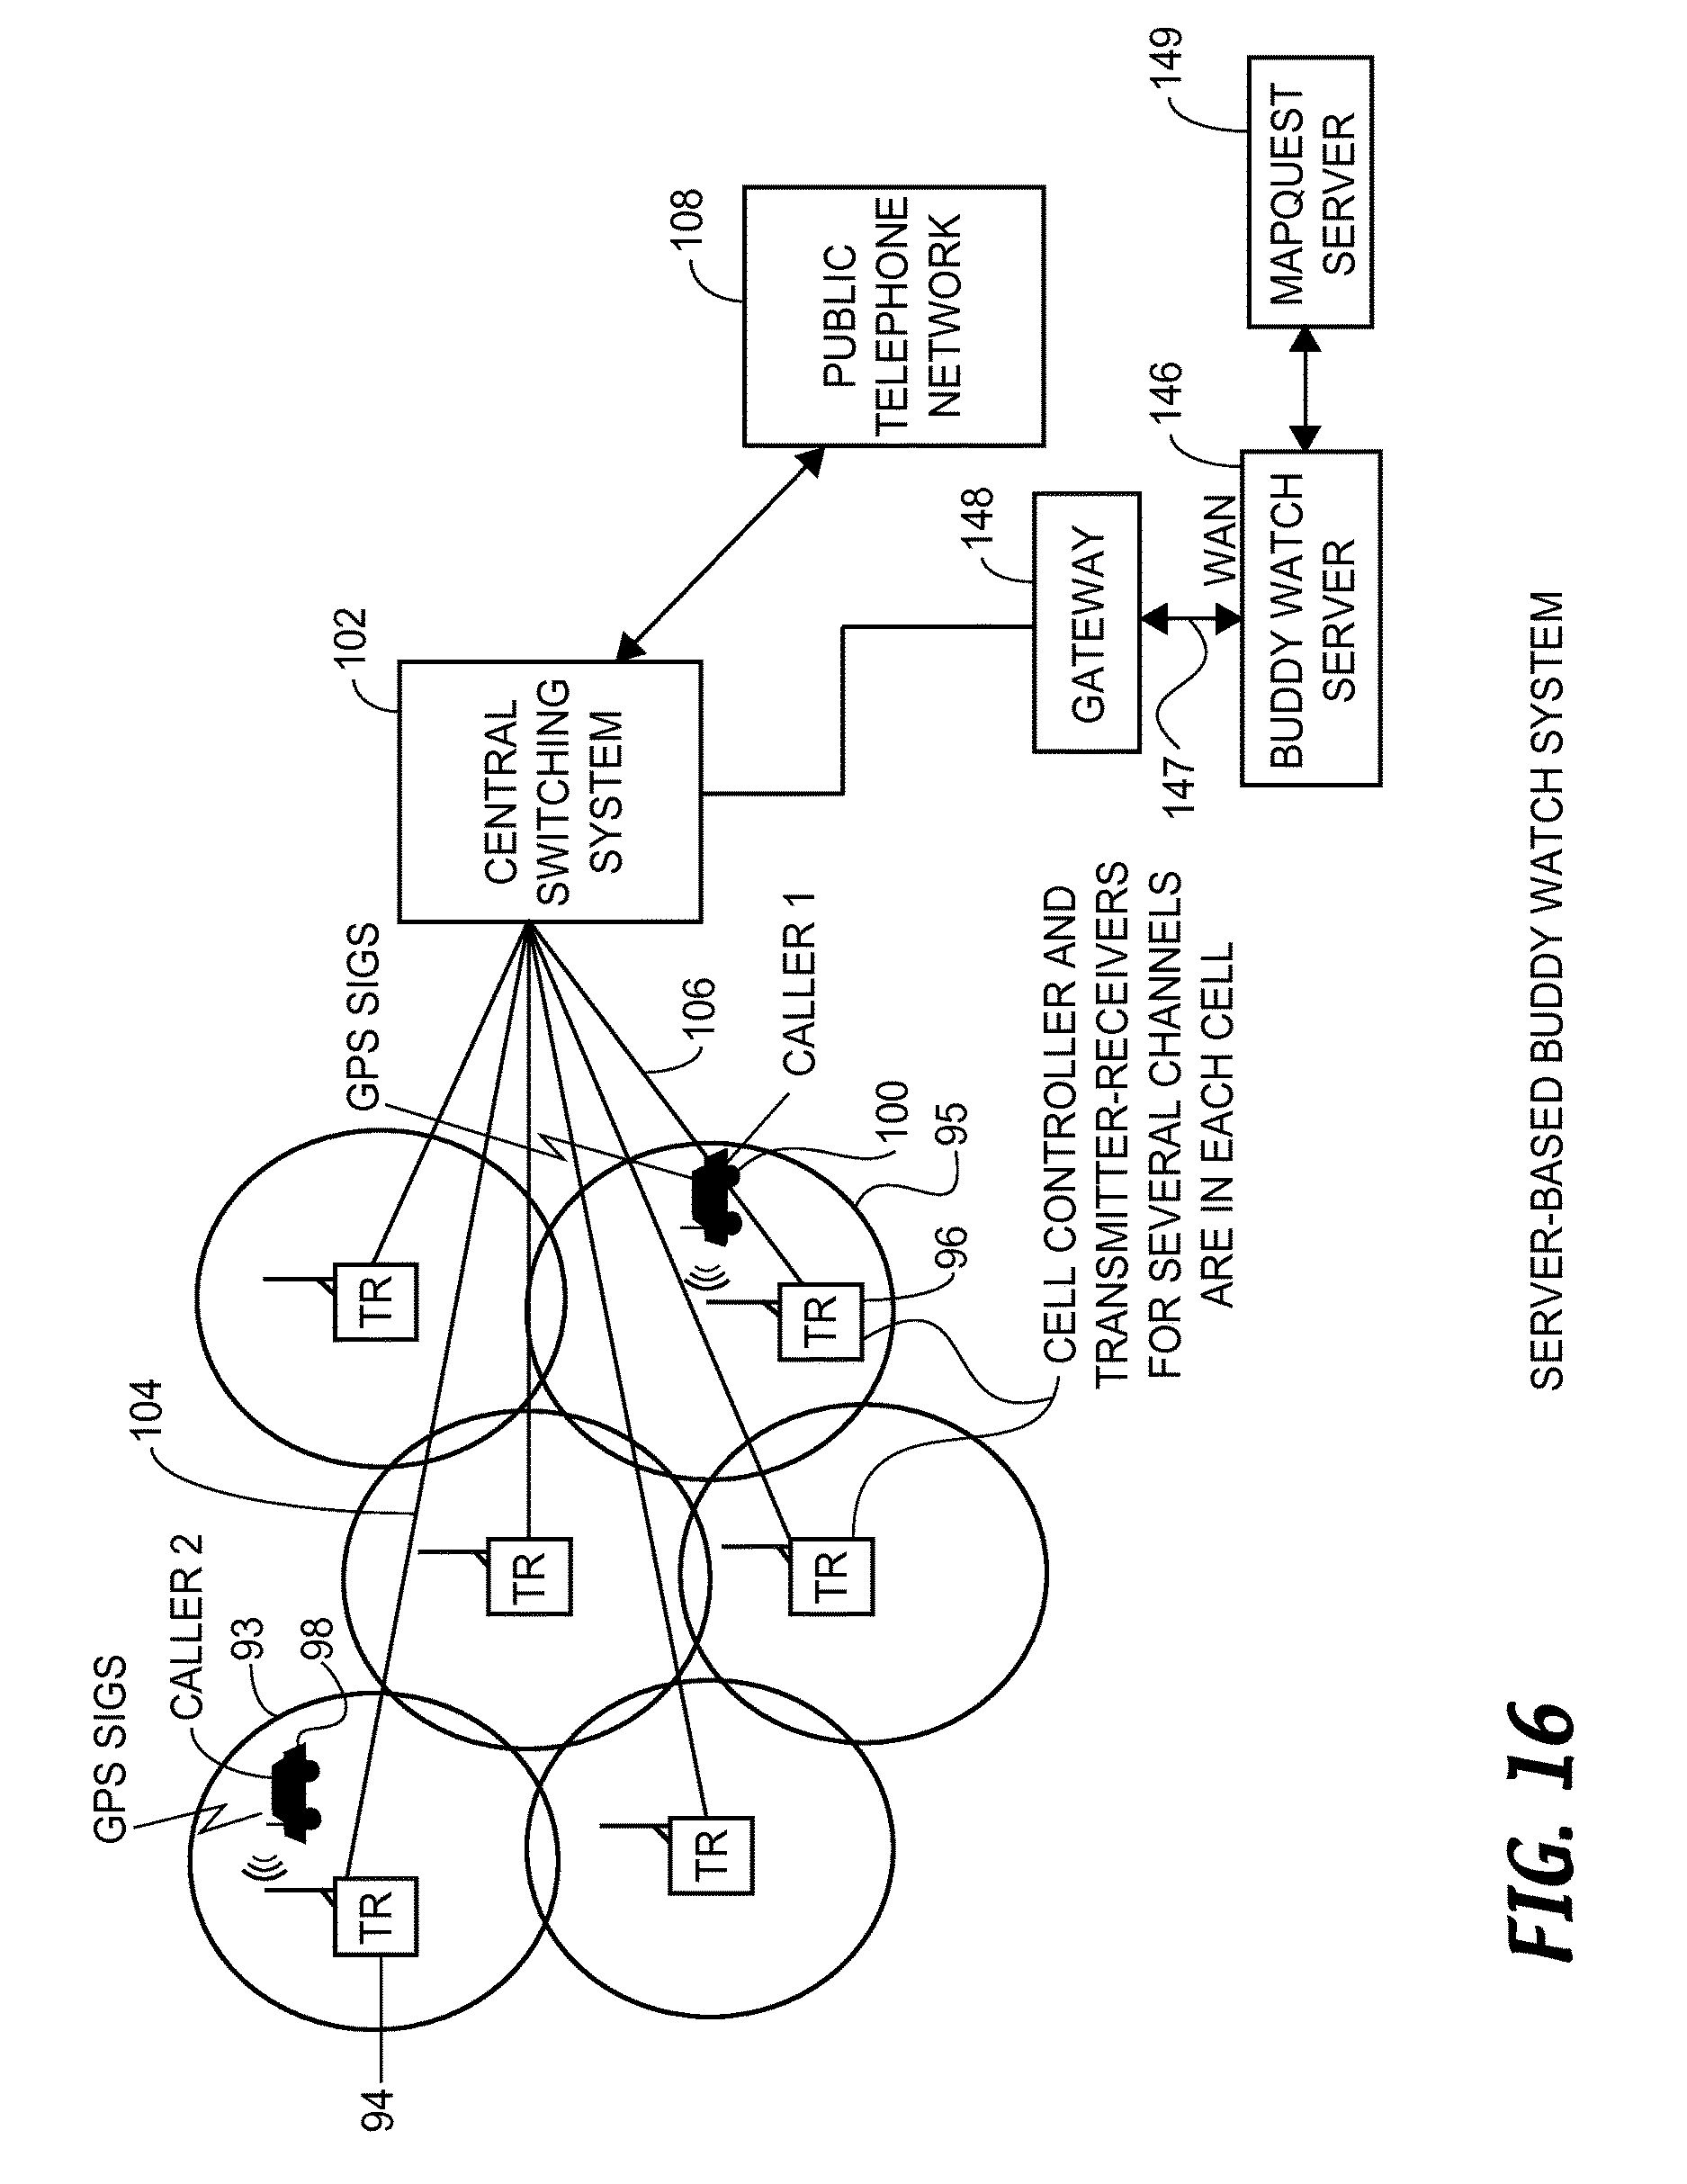 Us9584960b1 rendez vous management using mobile phones or other mobile devices patents